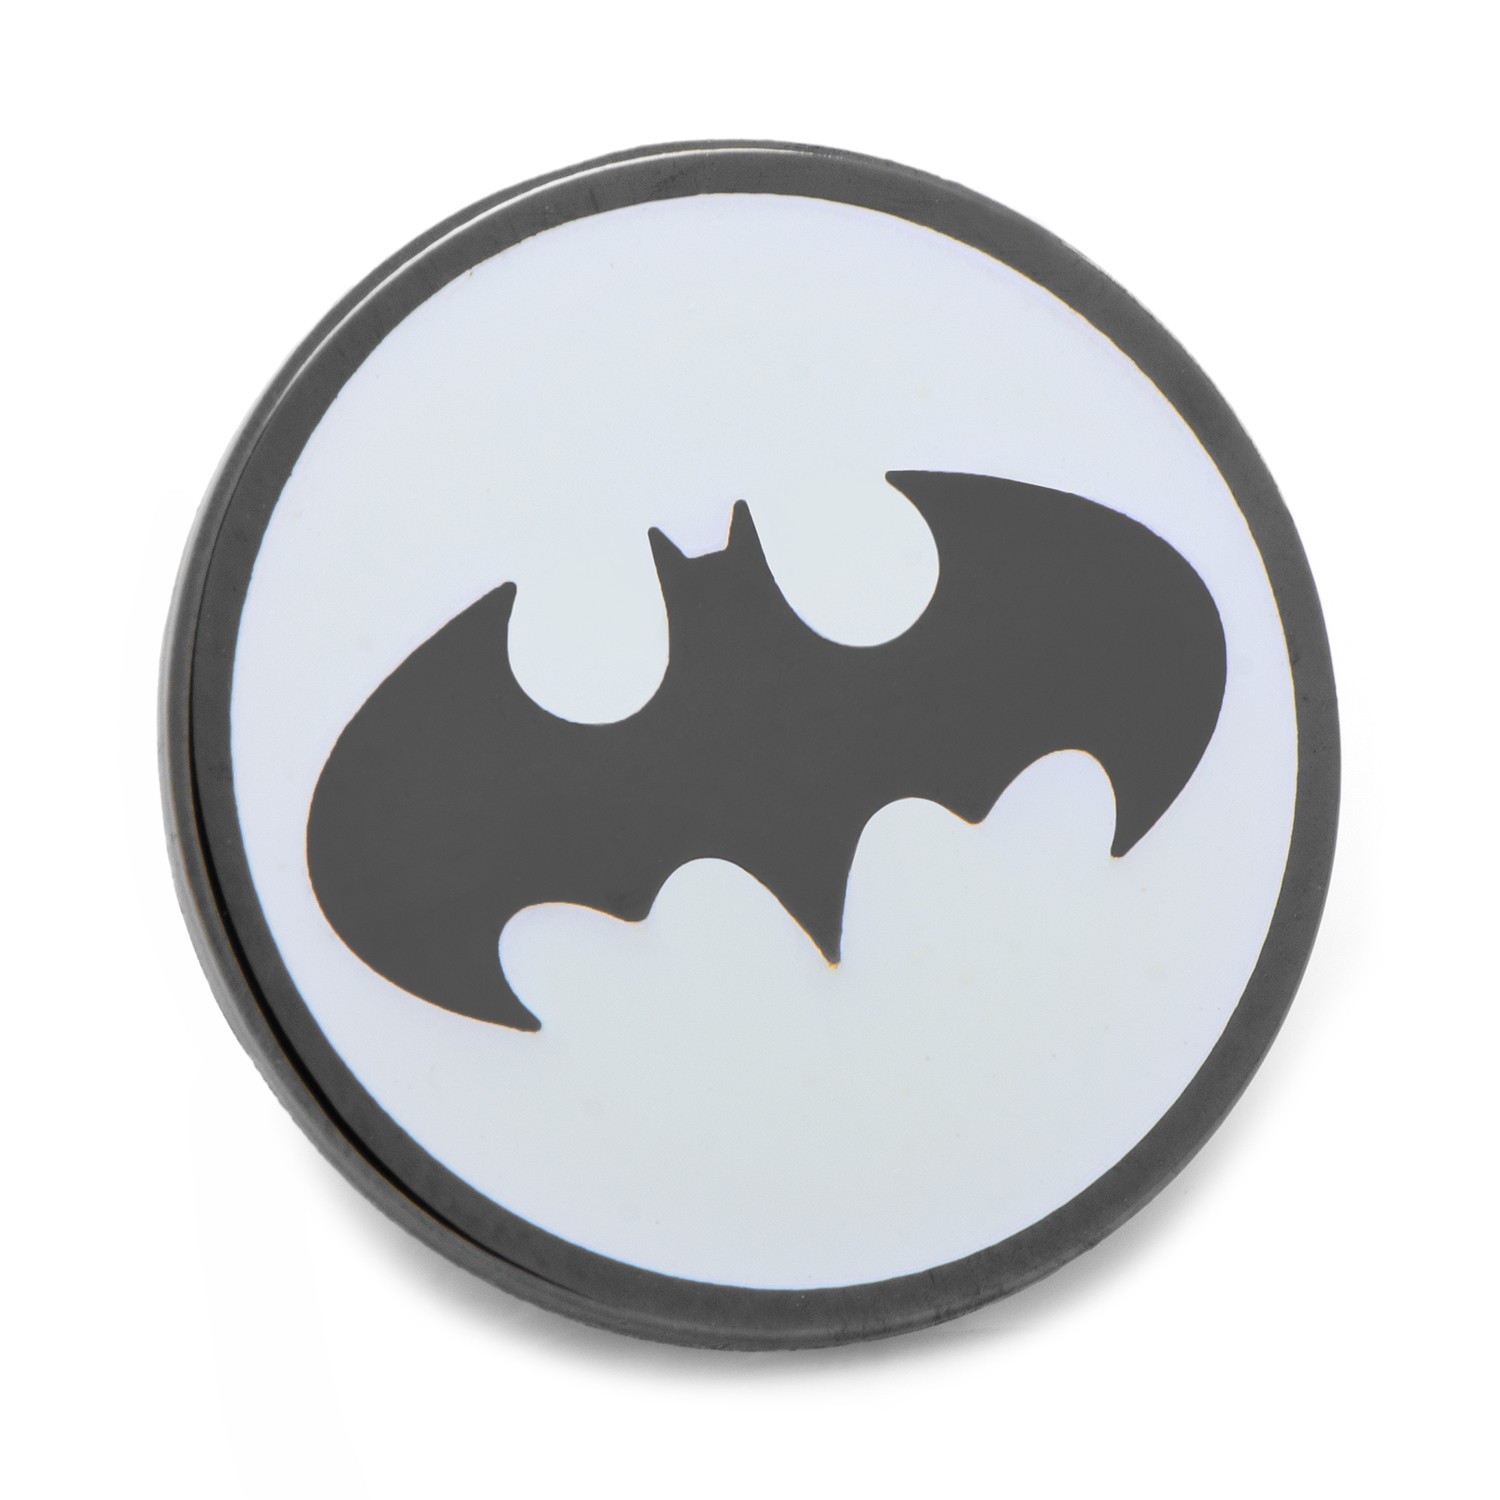 Batman Glow-in-the-Dark Lapel Pin